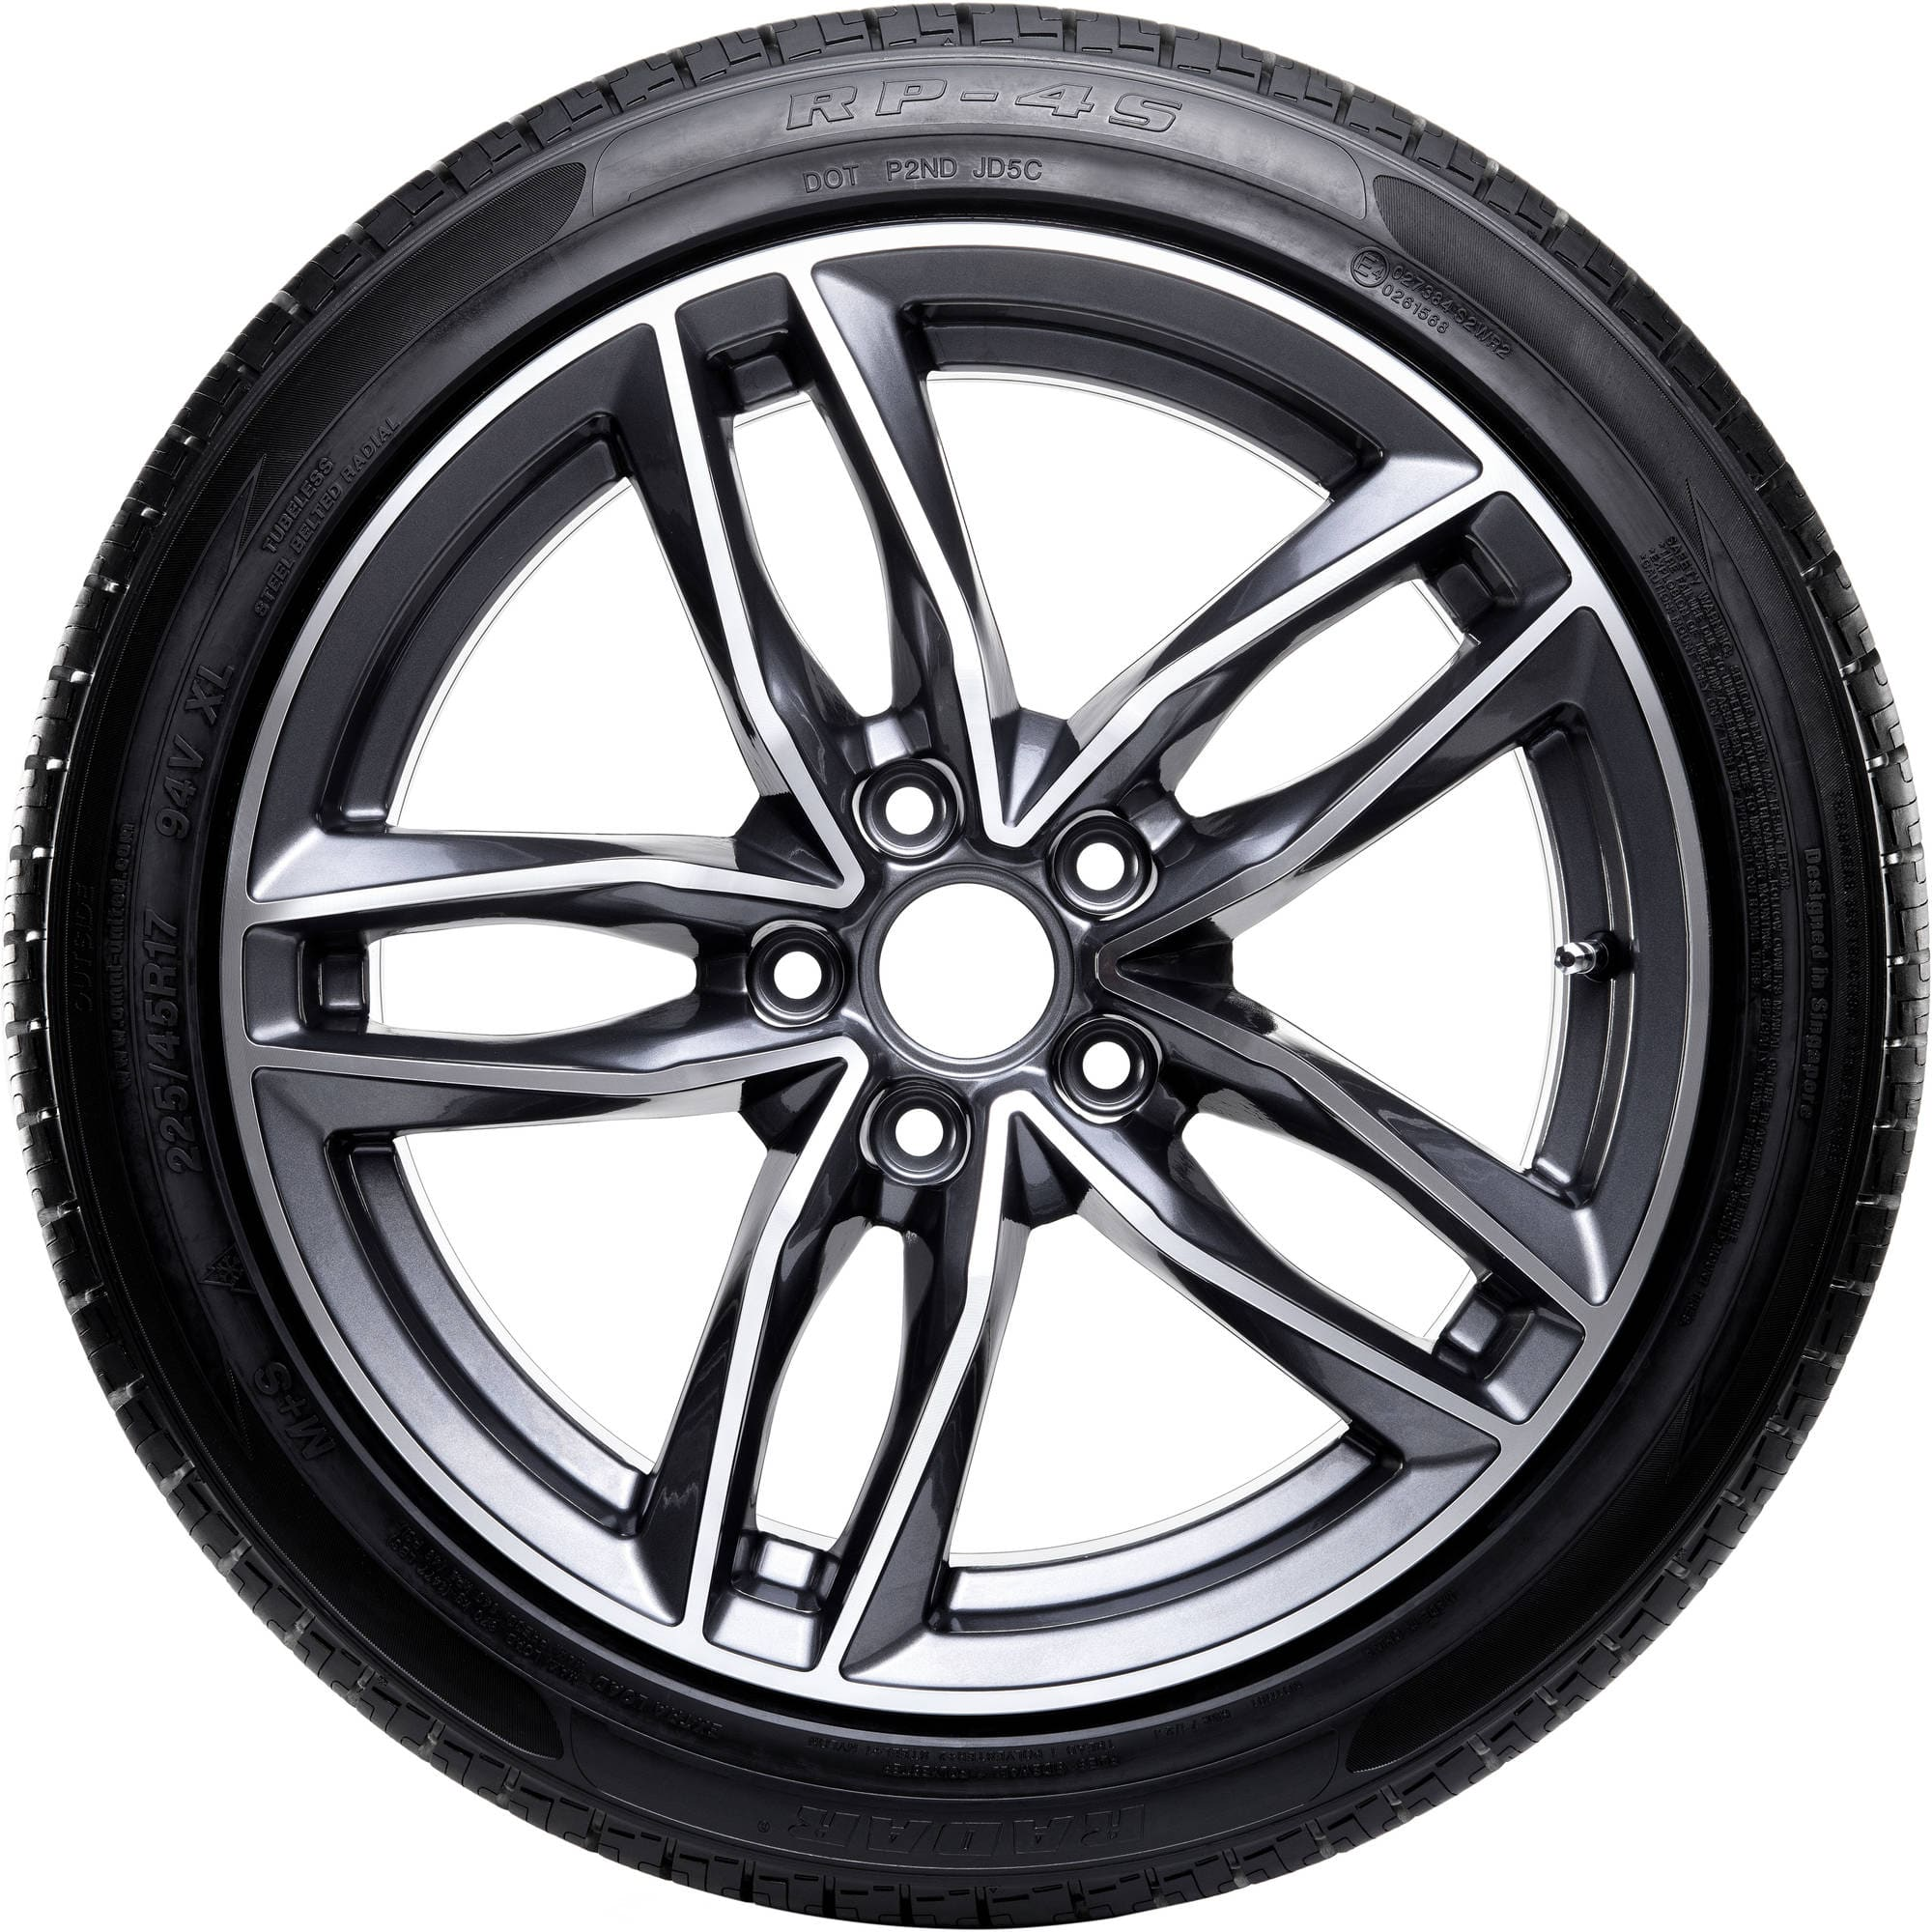 Radar Dimax 4 Season RP-4S *RUN FLAT* Tires 255/55R18 109W BSW for $55.50+tax